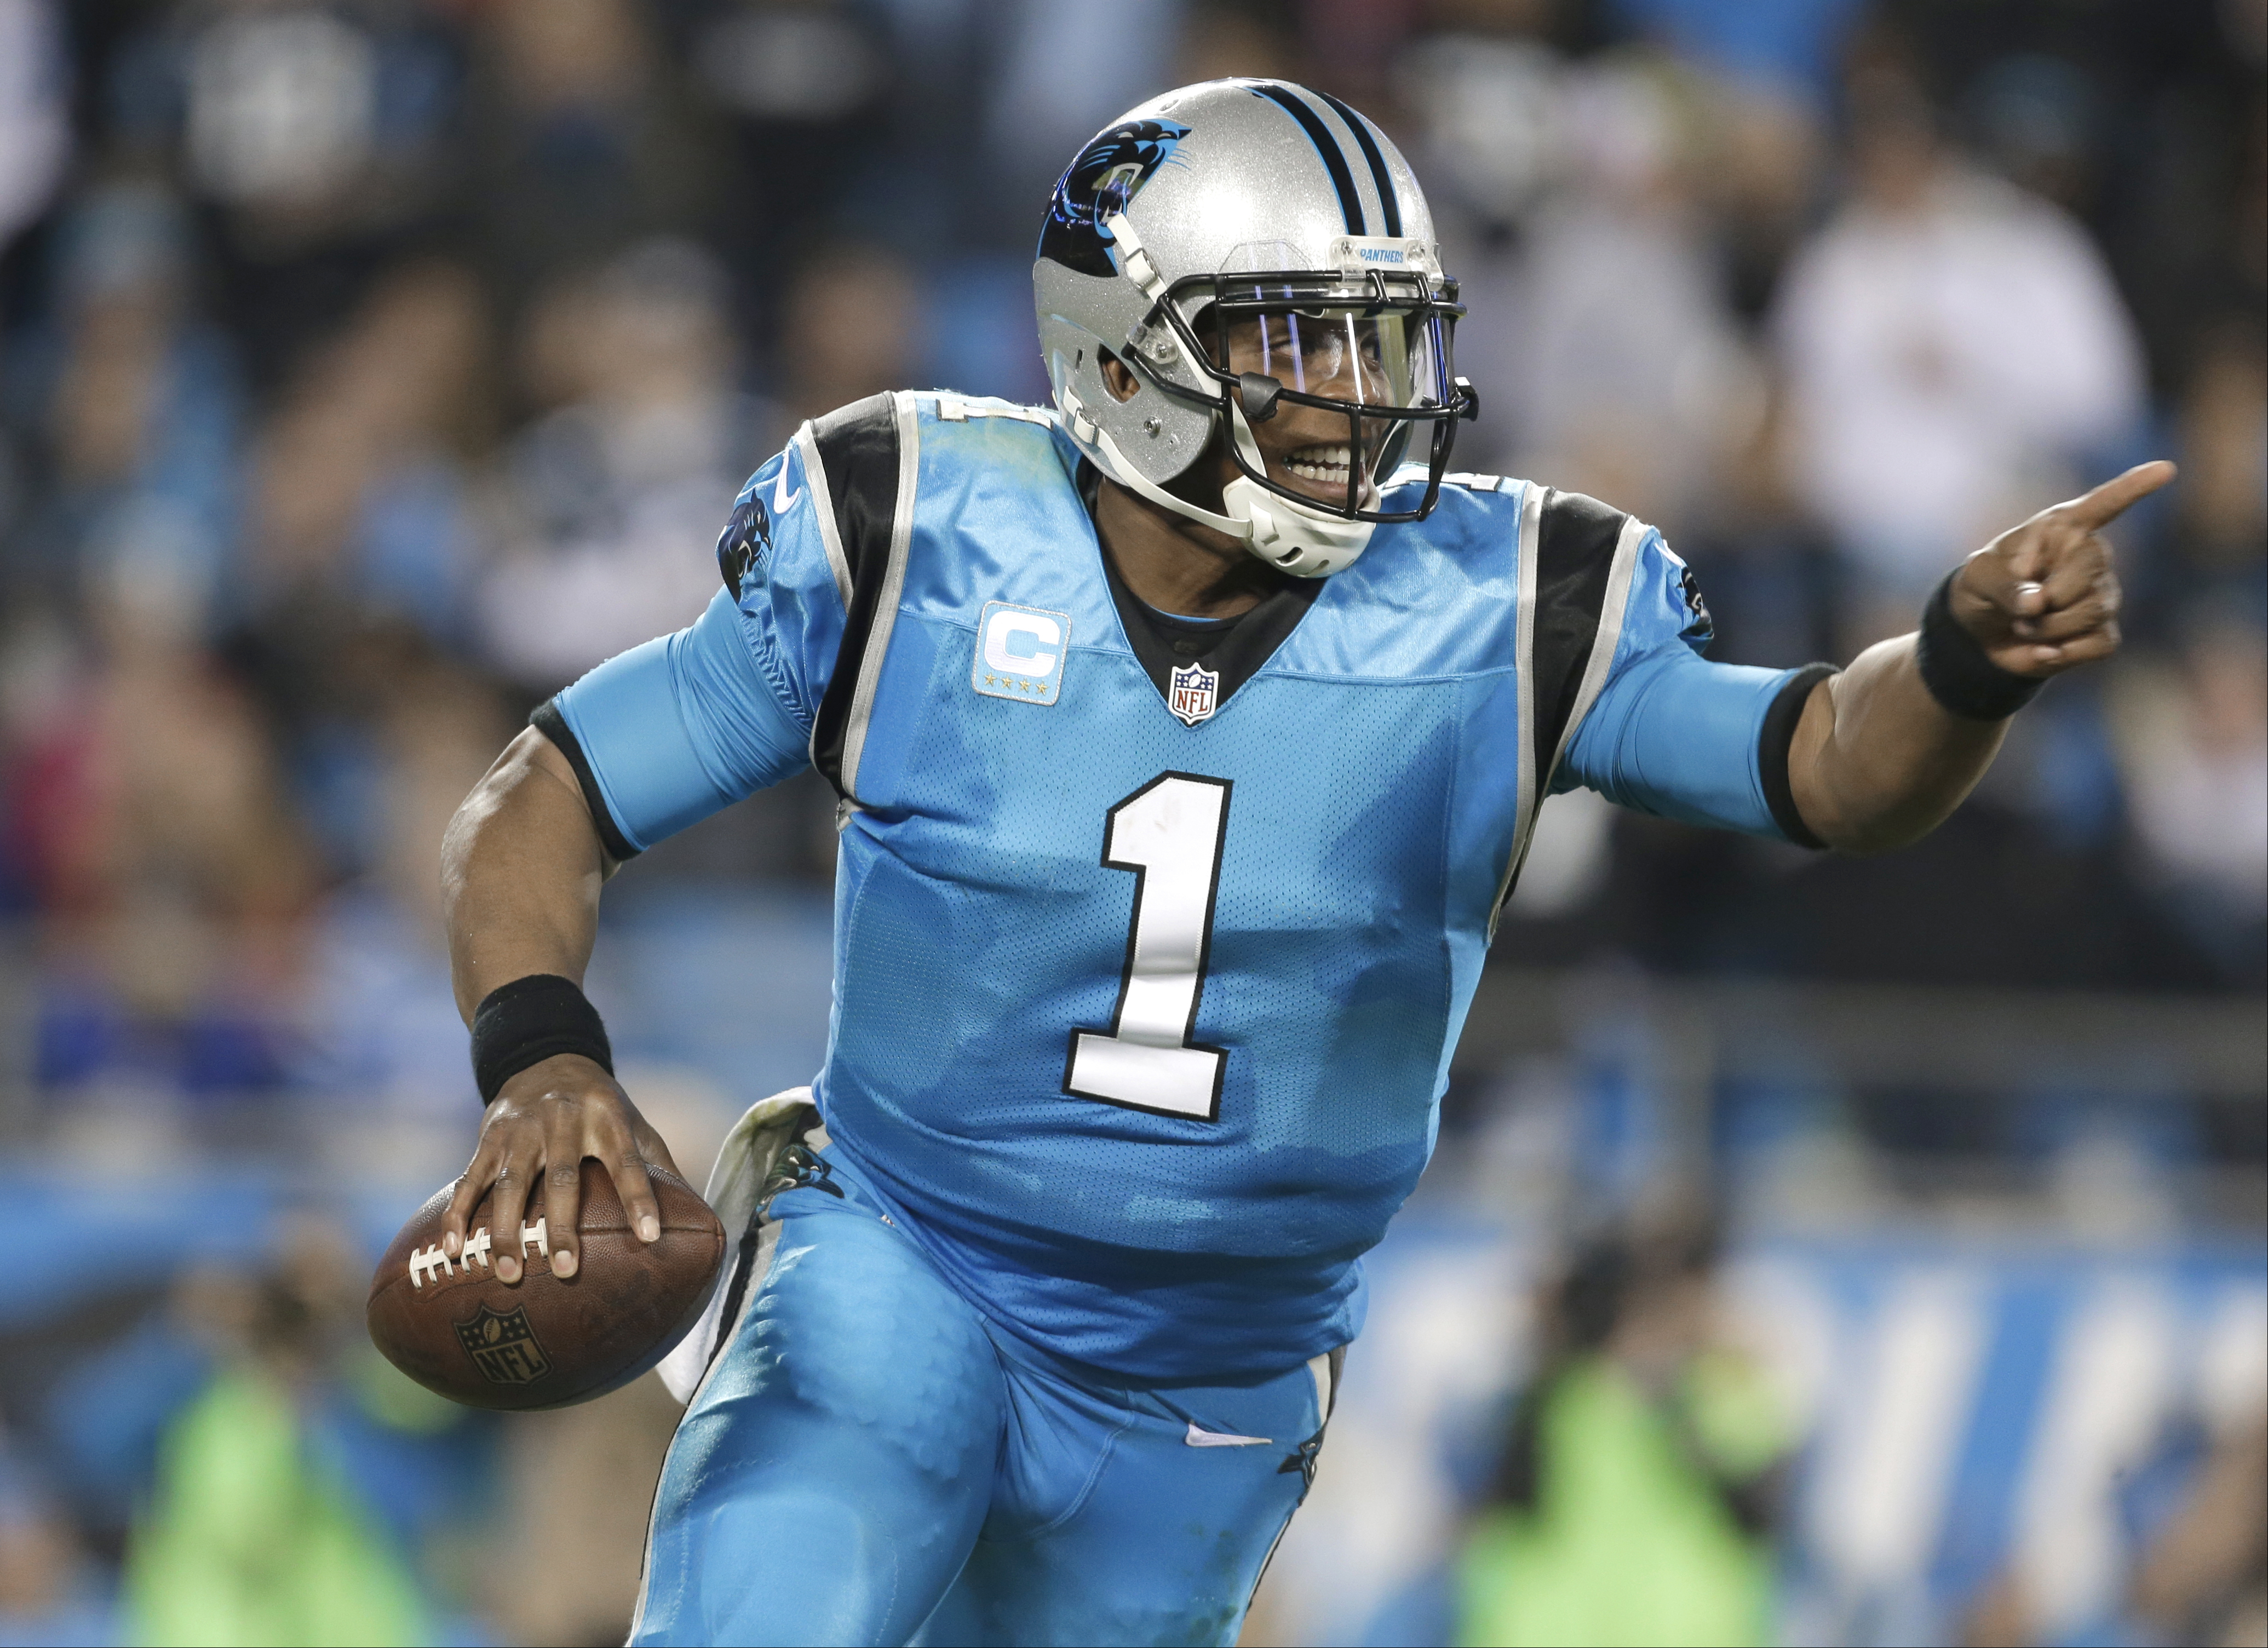 FILE - In this Thursday, Nov. 17, 2016 file photo, Carolina Panthers' Cam Newton (1) scrambles against the New Orleans Saints in the second half of an NFL football game in Charlotte, N.C. Cam Newtons numbers this season are pedestrian at best, a far cry f